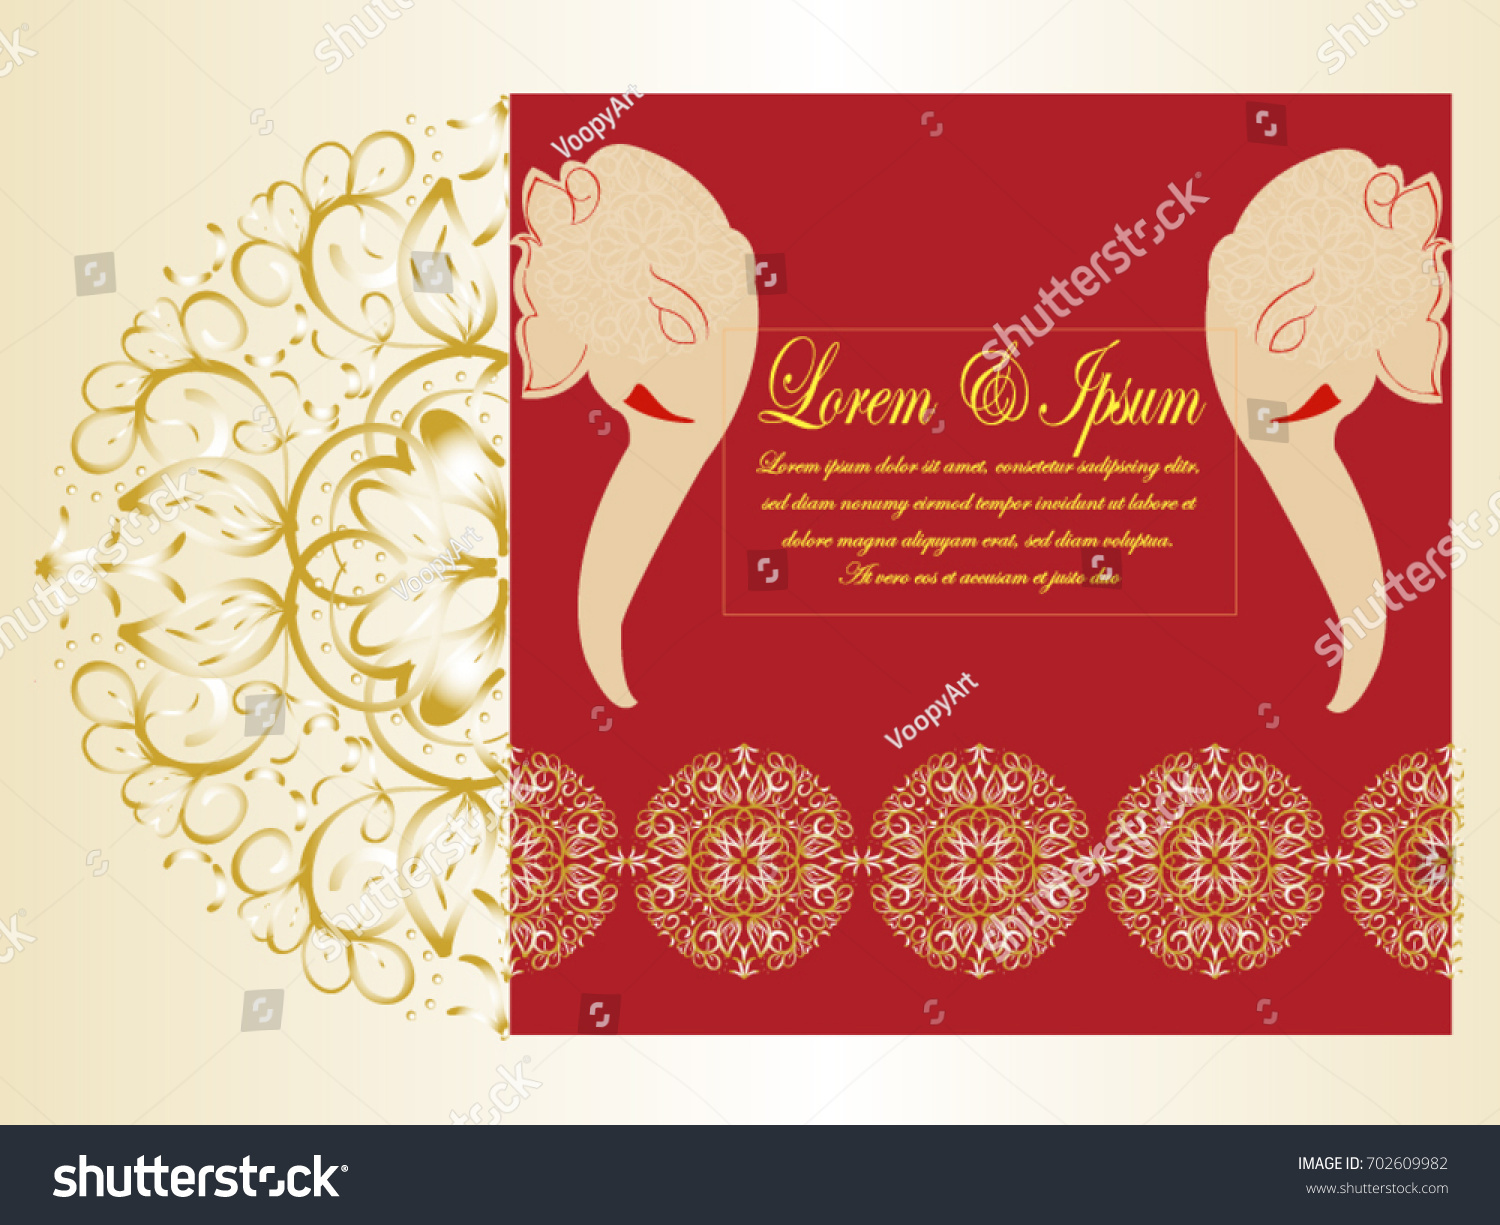 Invitation Elegant Wedding Card Mahdi Mandala Stock Vector 702609982 ...